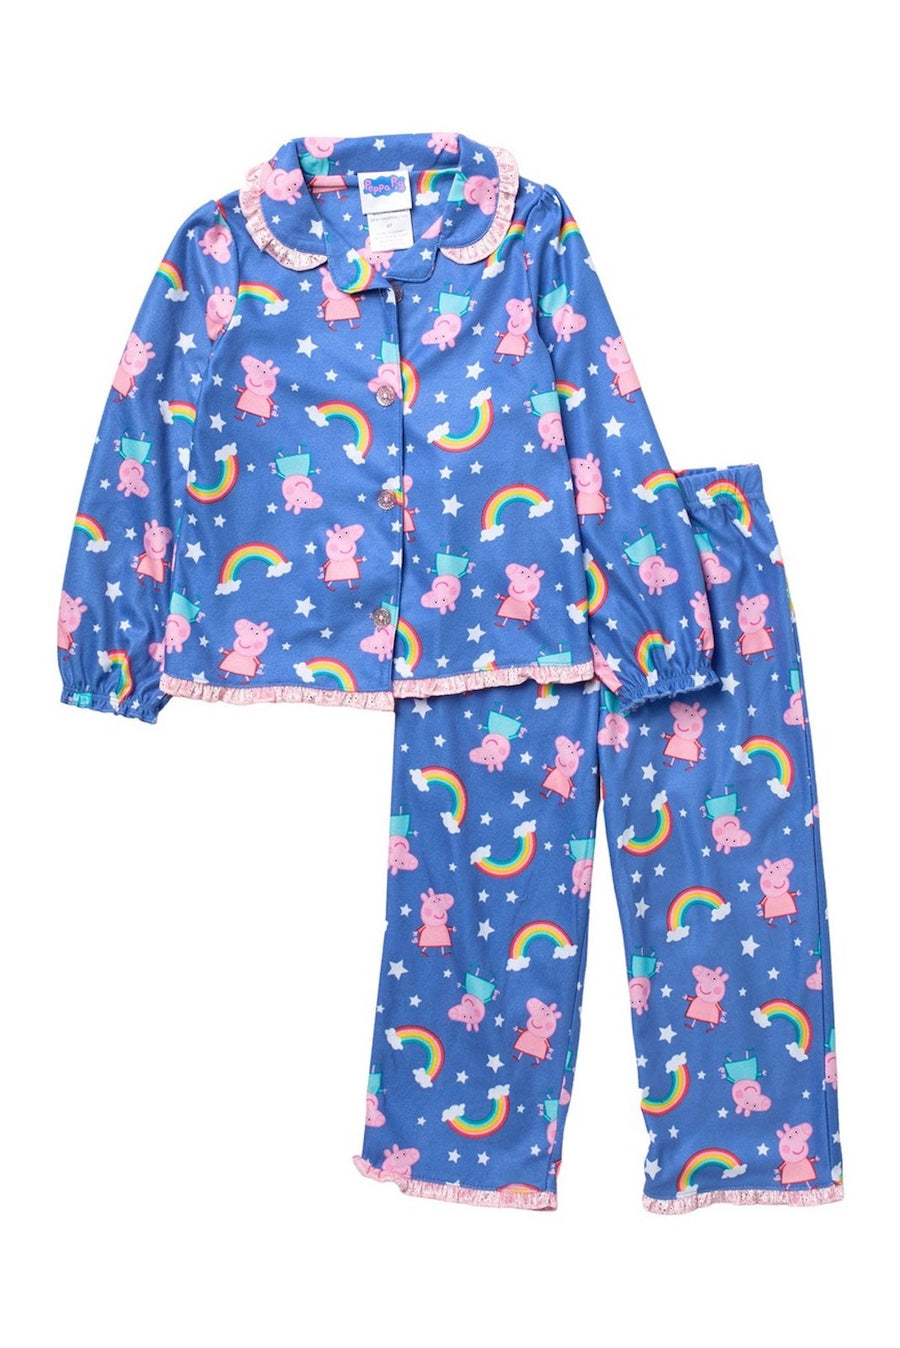 Peppa Pig Toddler Girls Pajama Set Long Sleeve 2PC Peppa PJs Outfit 2T-4T Purple